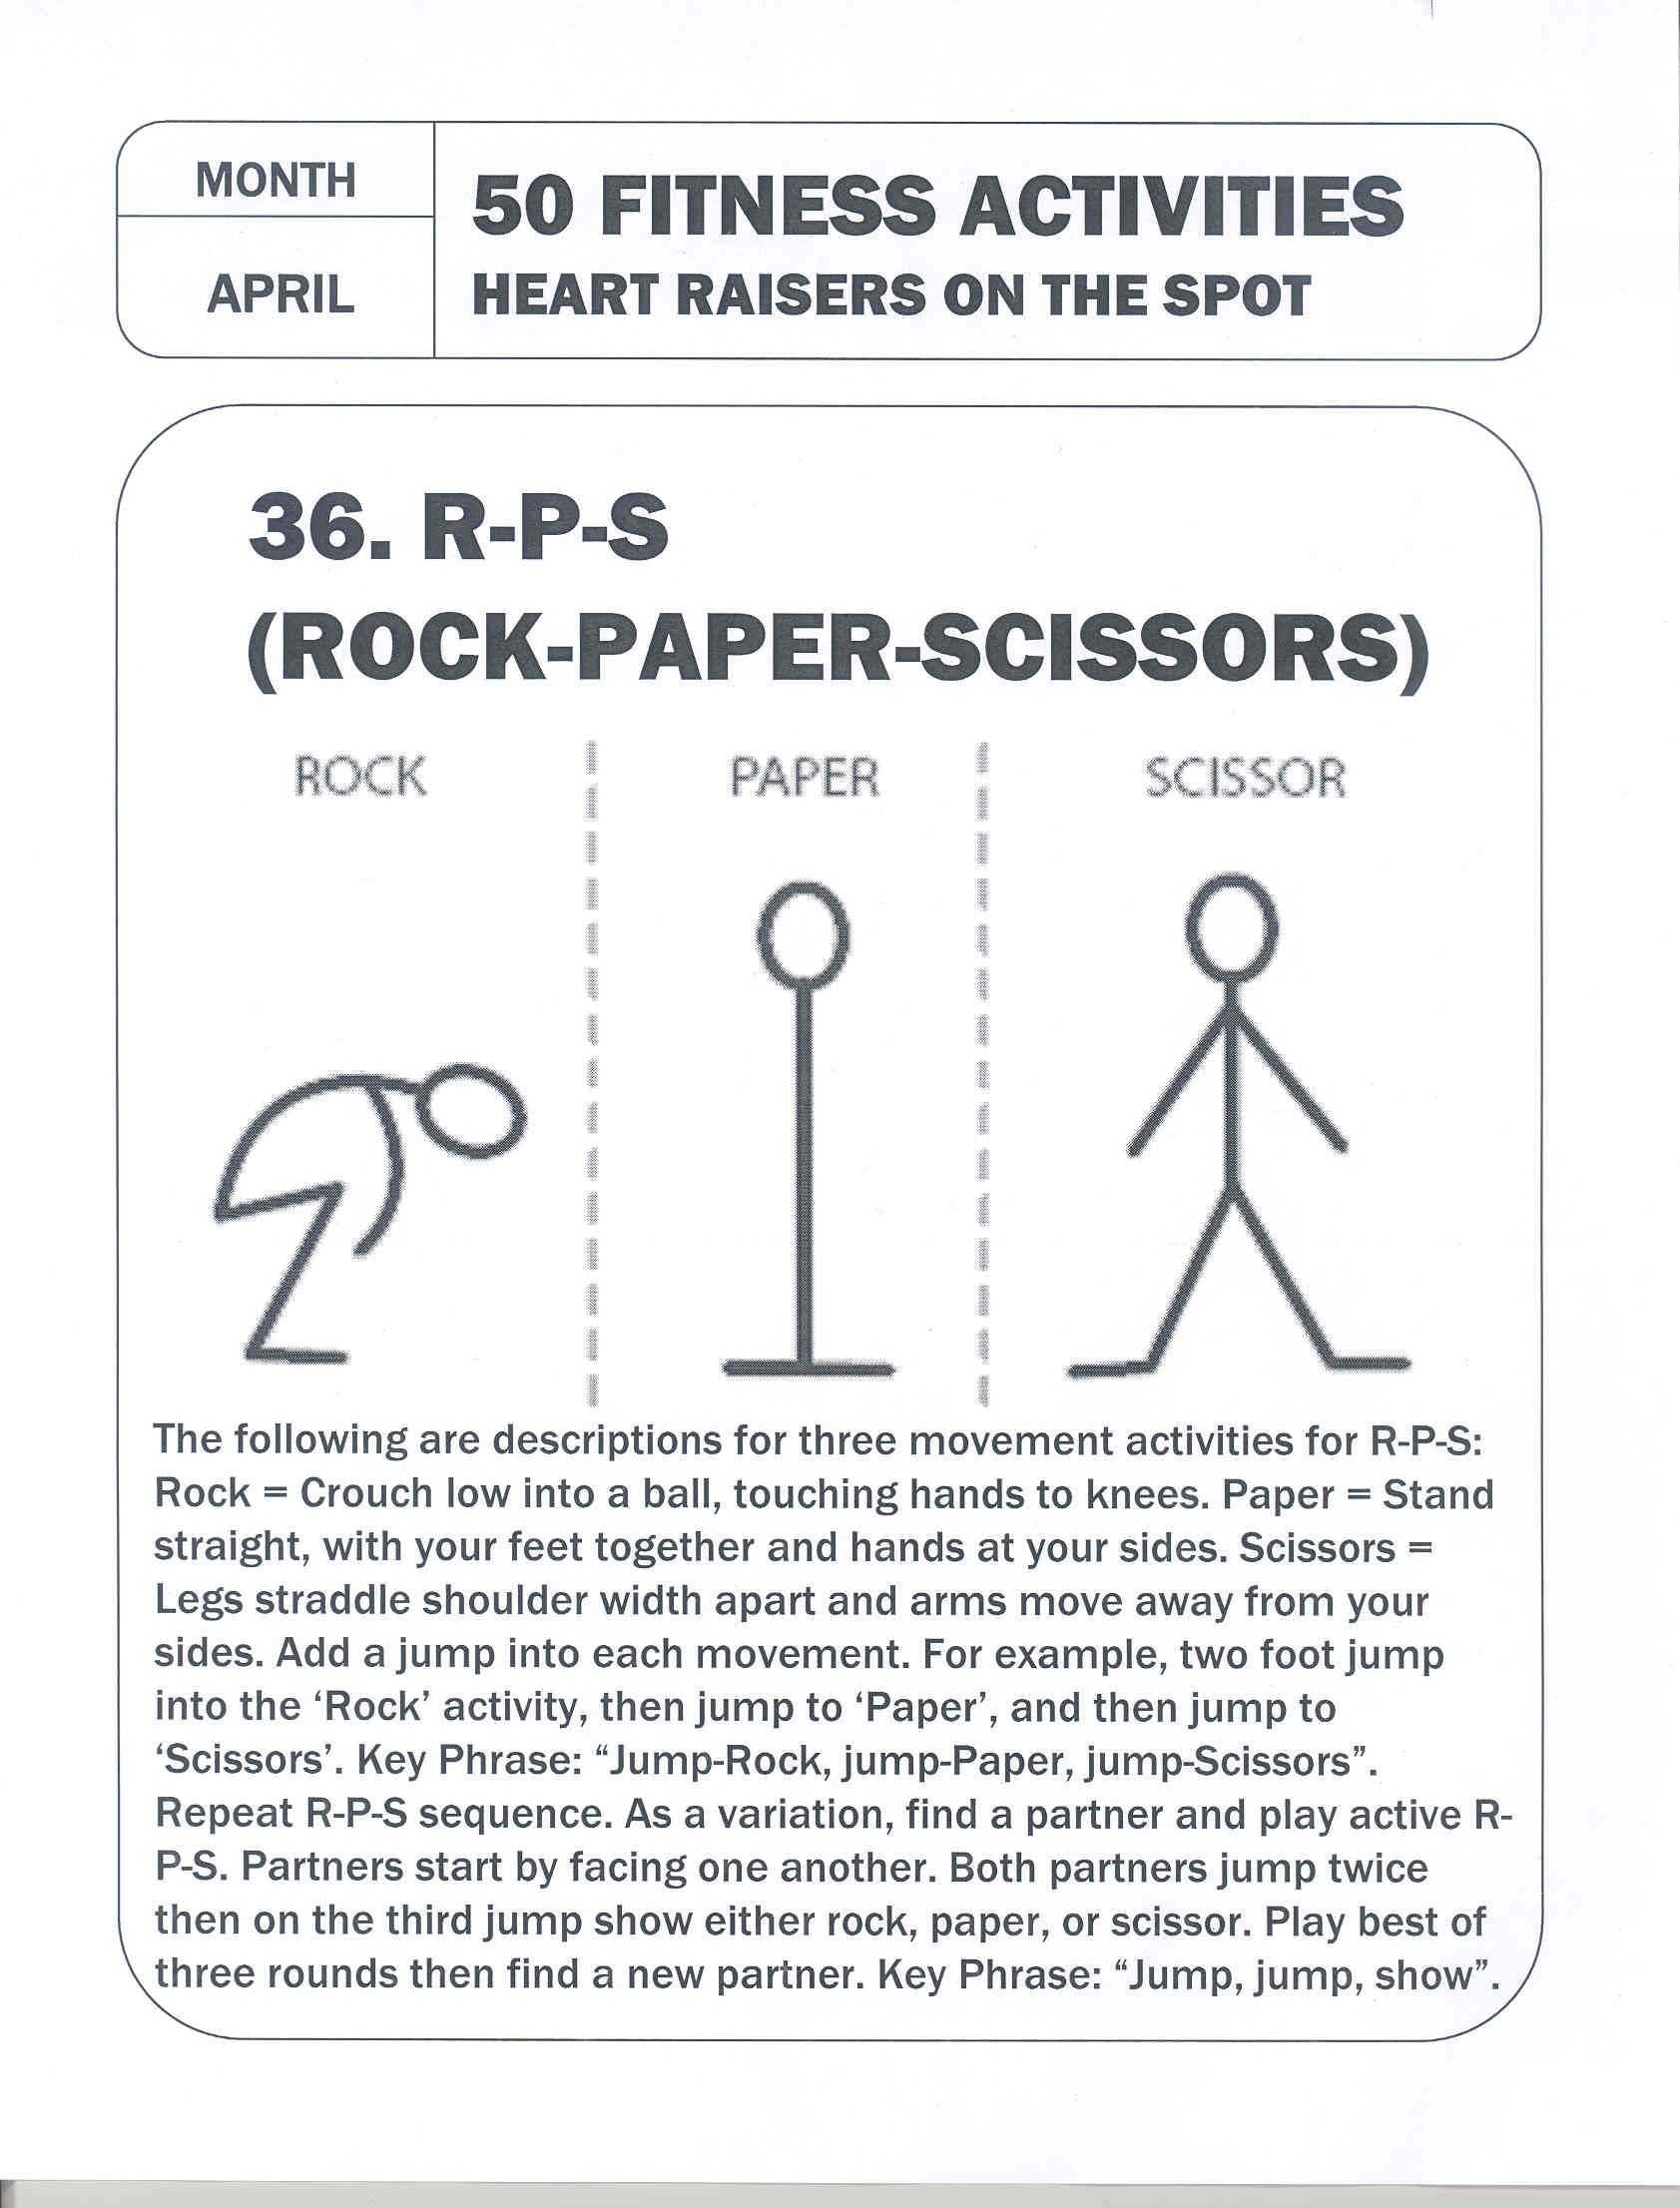 50 Fitness Activities Heart Raisers On The Spot